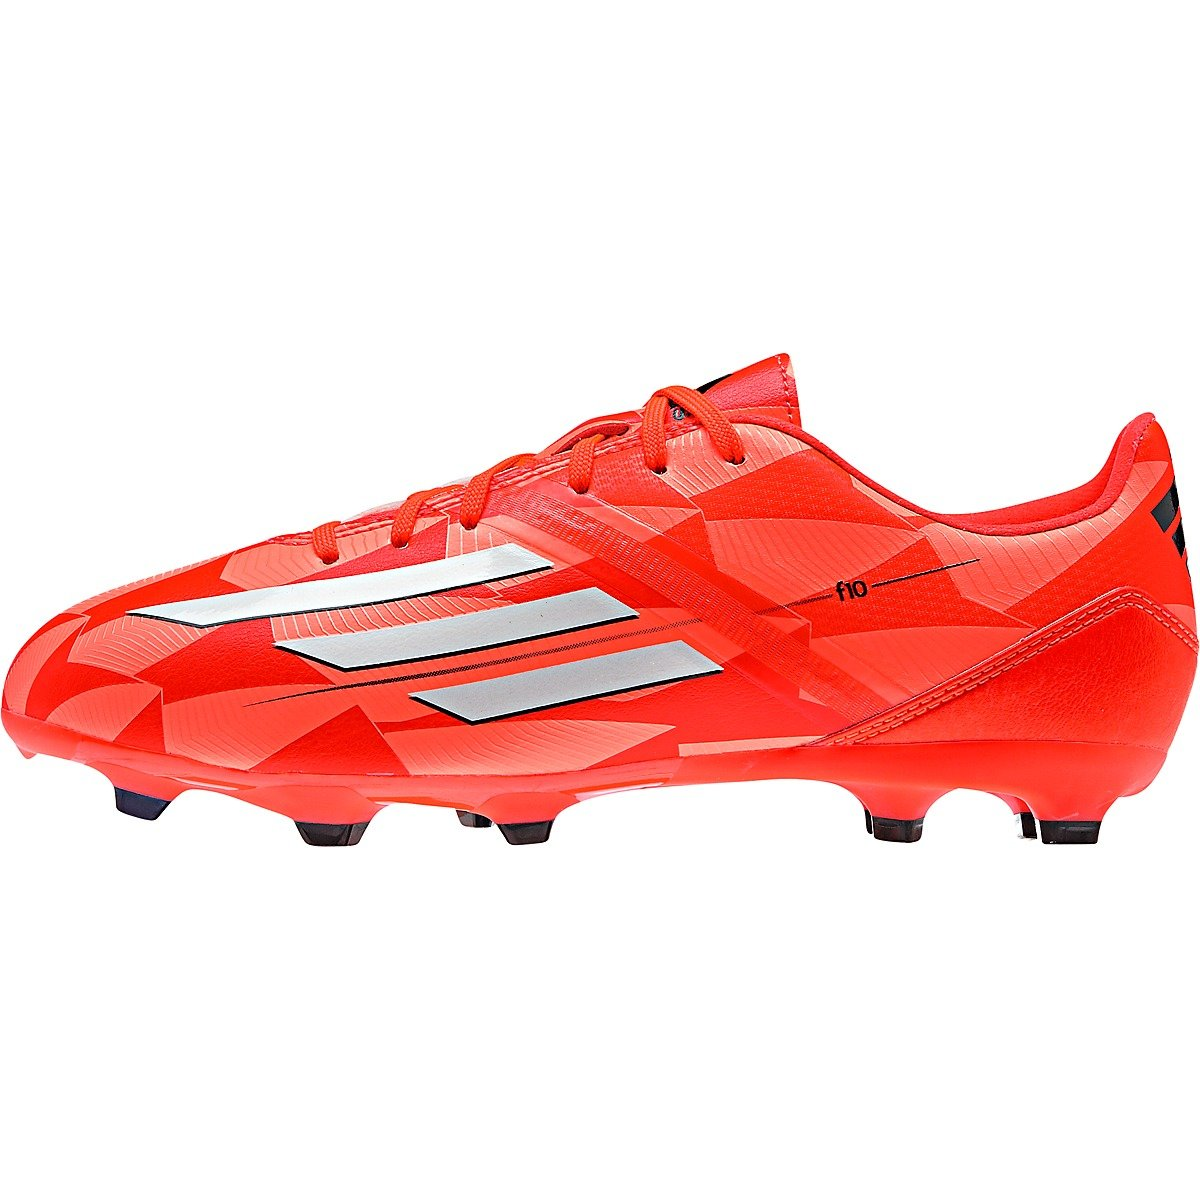 Adidas F10 Womens Firm Ground Cleats [SOLRED/CWHITE/GLITRA] (5)